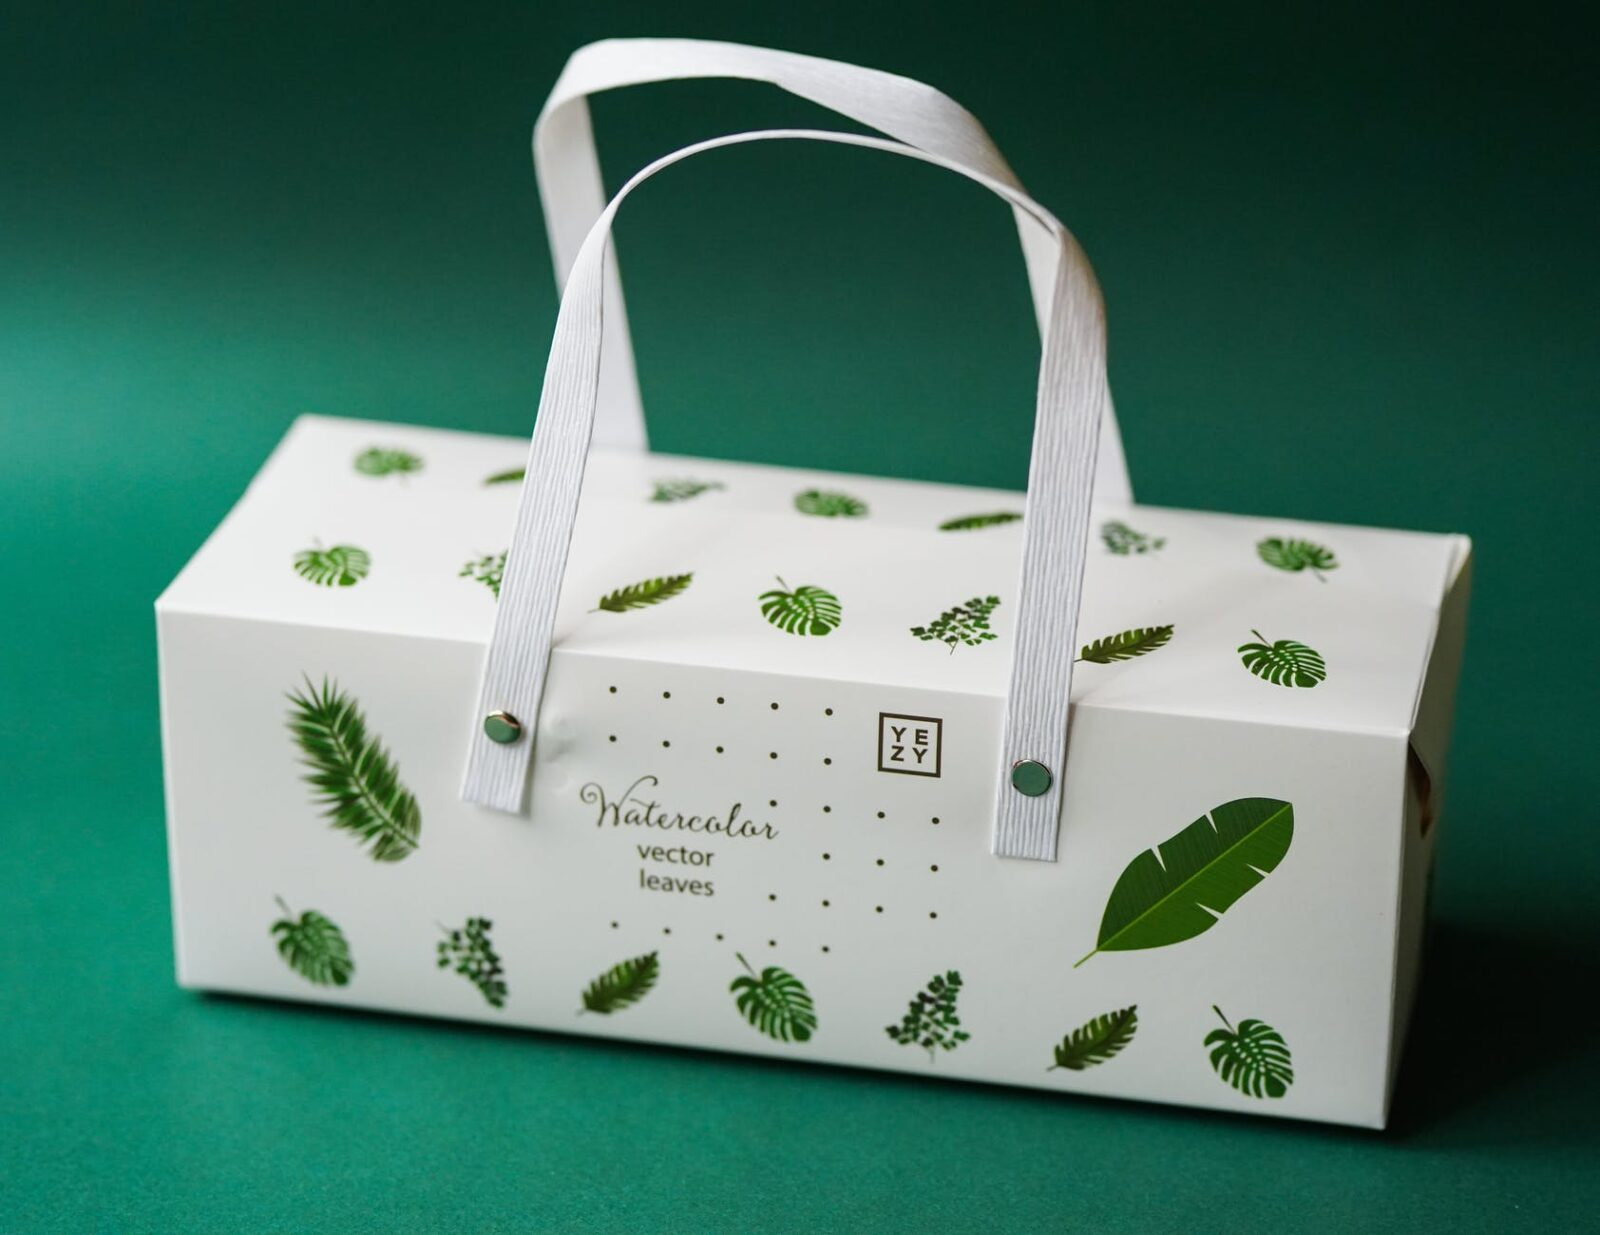 5 Packaging Trends You Should Leverage in 2021